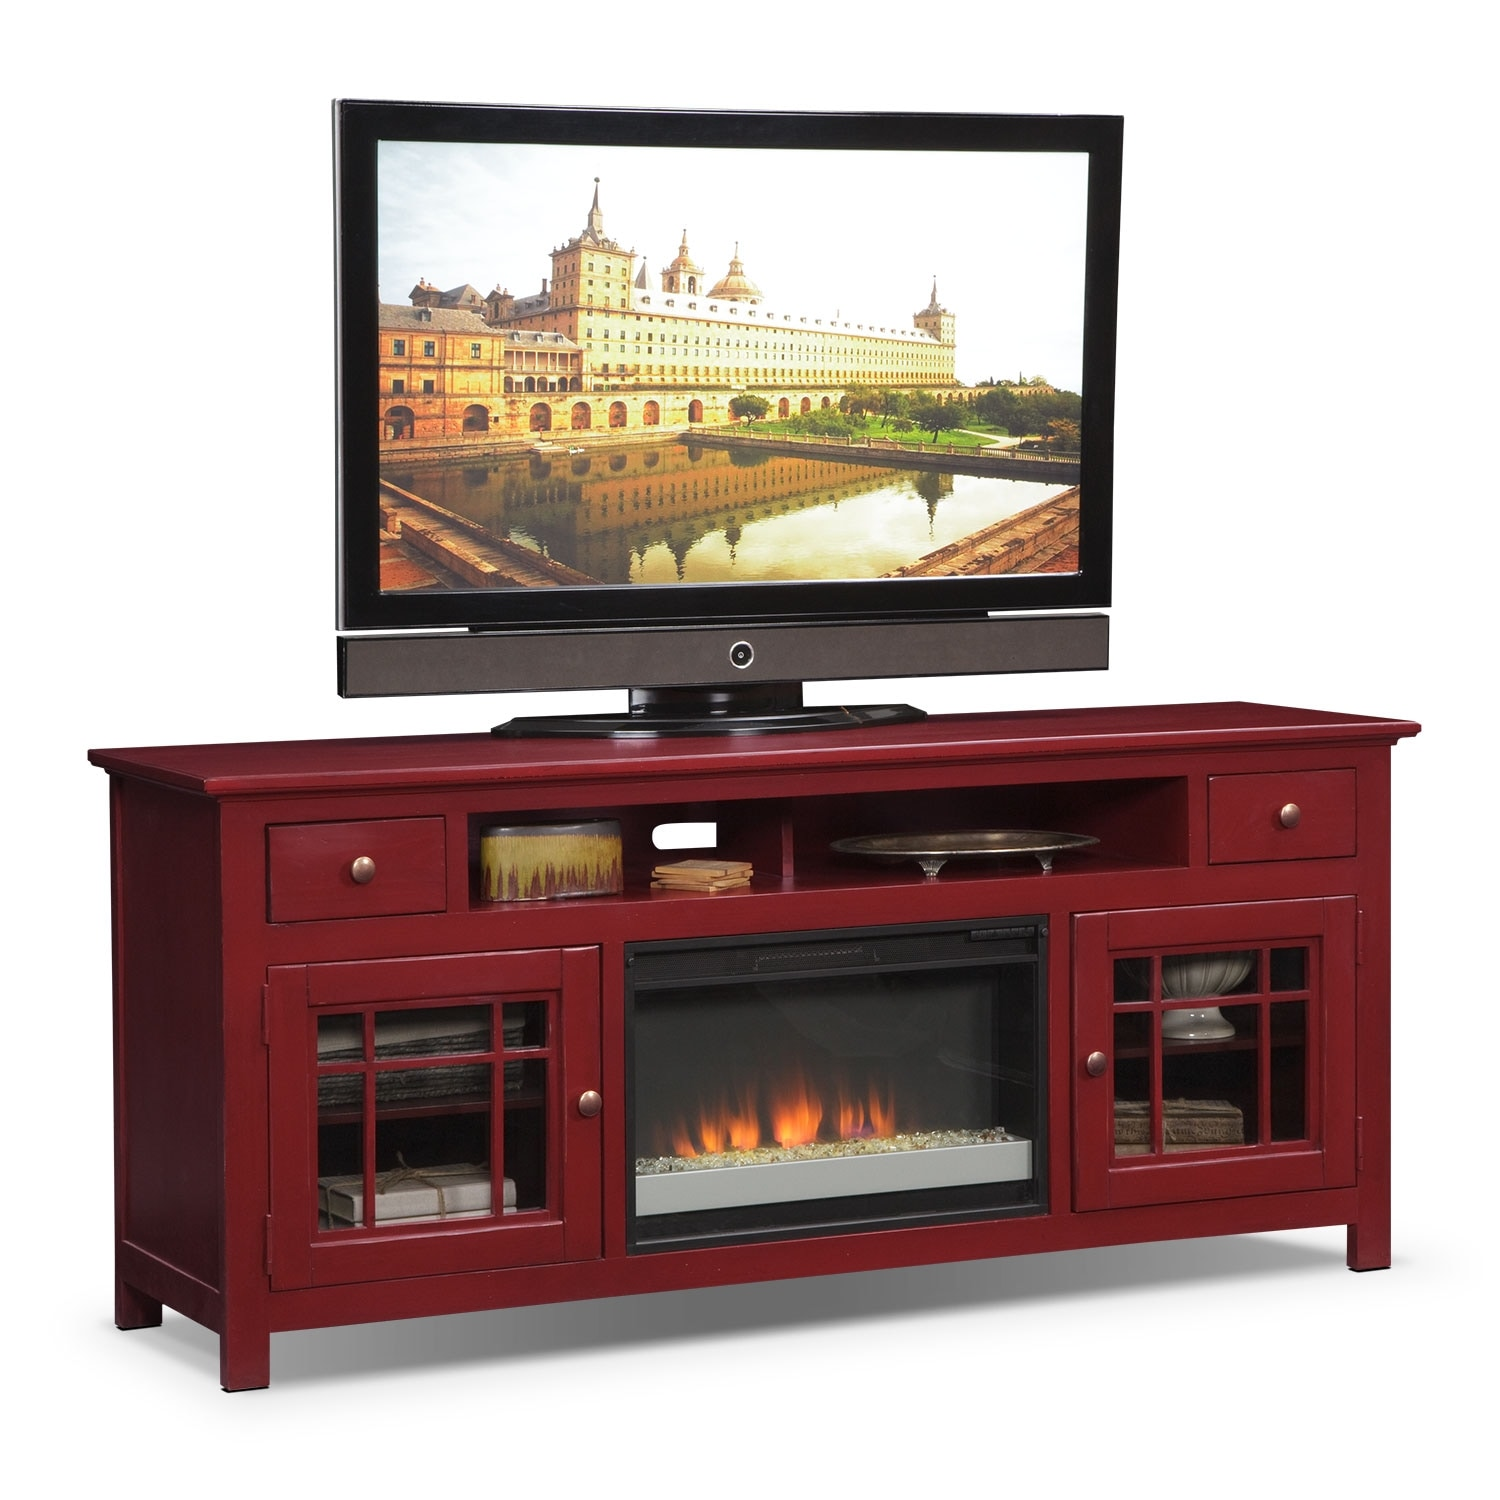 Merrick red 74 fireplace tv stand with contemporary for Tv furniture